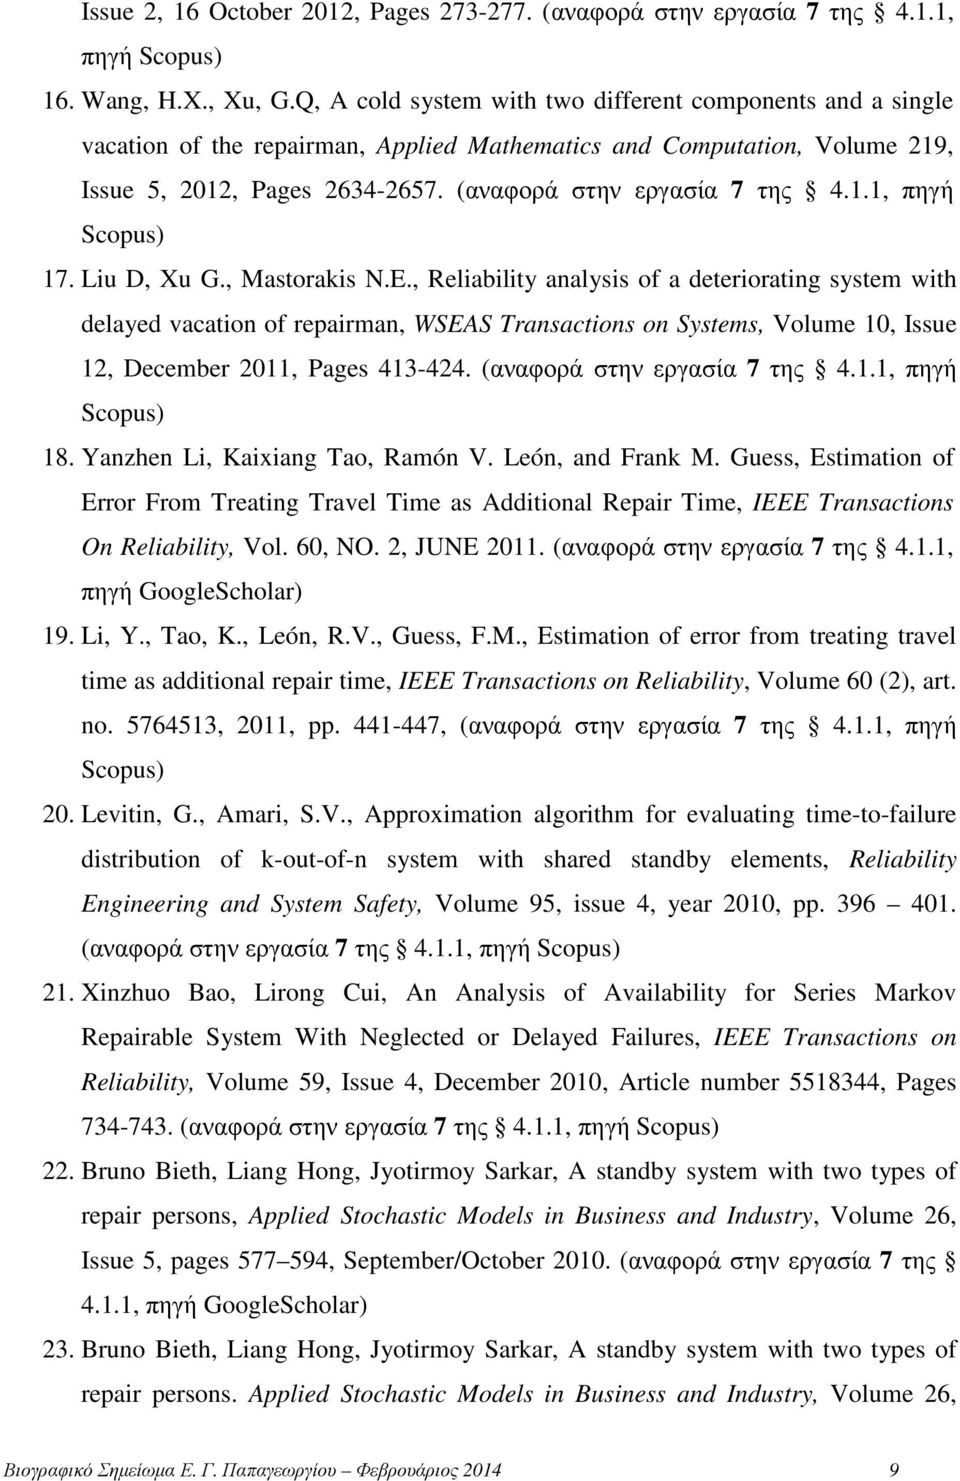 Liu D, Xu G., Mastorakis N.E., Reliability analysis of a deteriorating system with delayed vacation of repairman, WSEAS Transactions on Systems, Volume 10, Issue 12, December 2011, Pages 413-424.